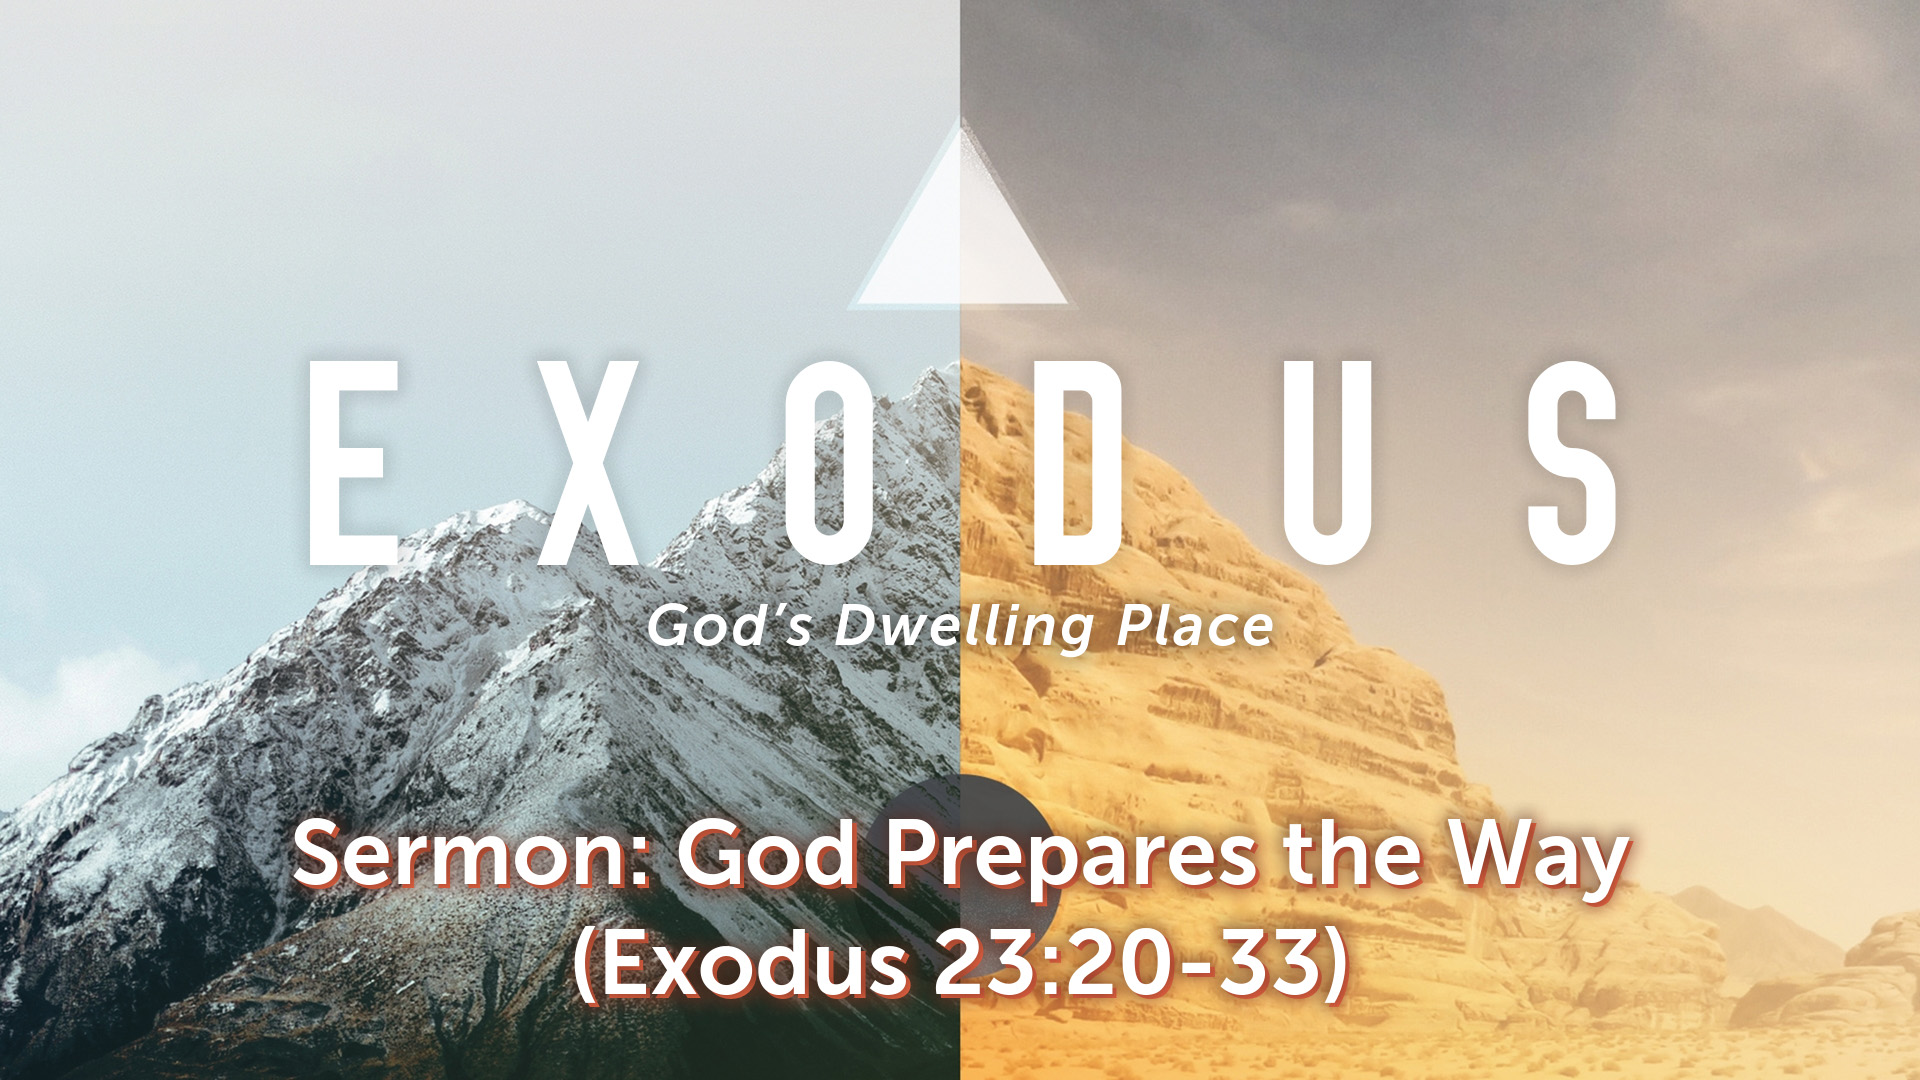 Image for the sermon God Prepares the Way